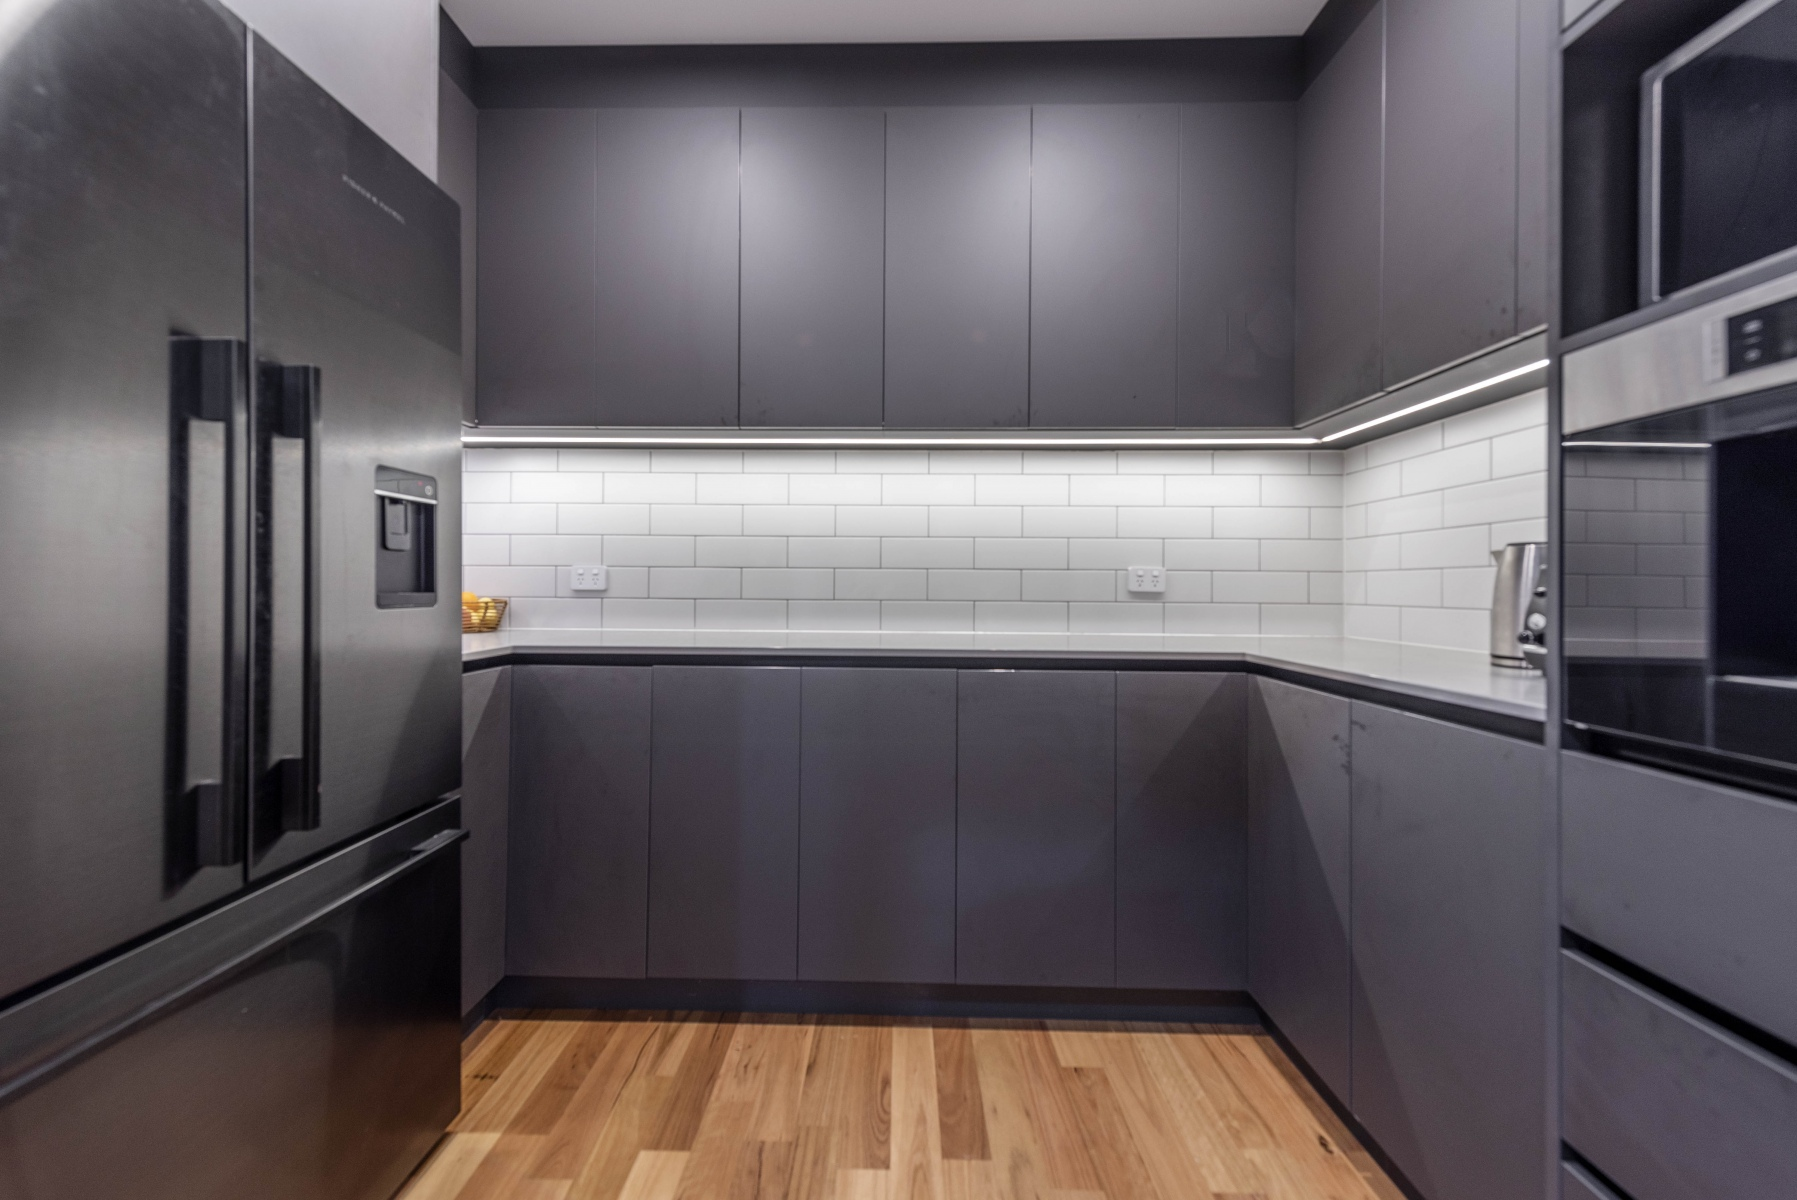 8.-Kitchen-butlers-pantry-e020